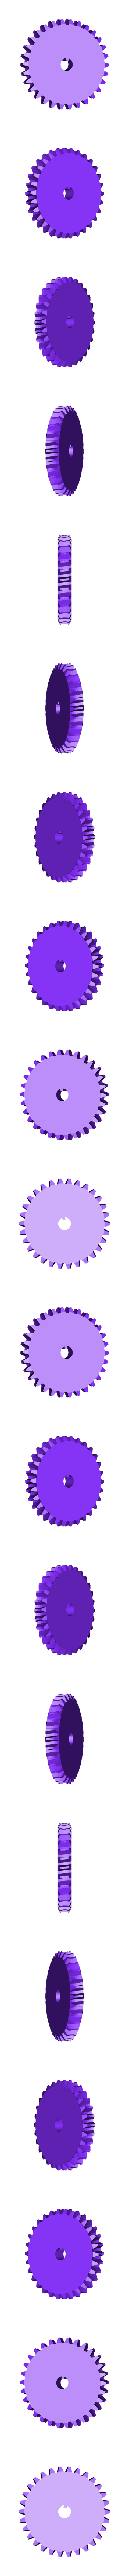 x_Worm_gear.stl Download free STL file Industrial Worm Gearbox / Gear Reducer (Cutaway version) • 3D print design, LarsRb